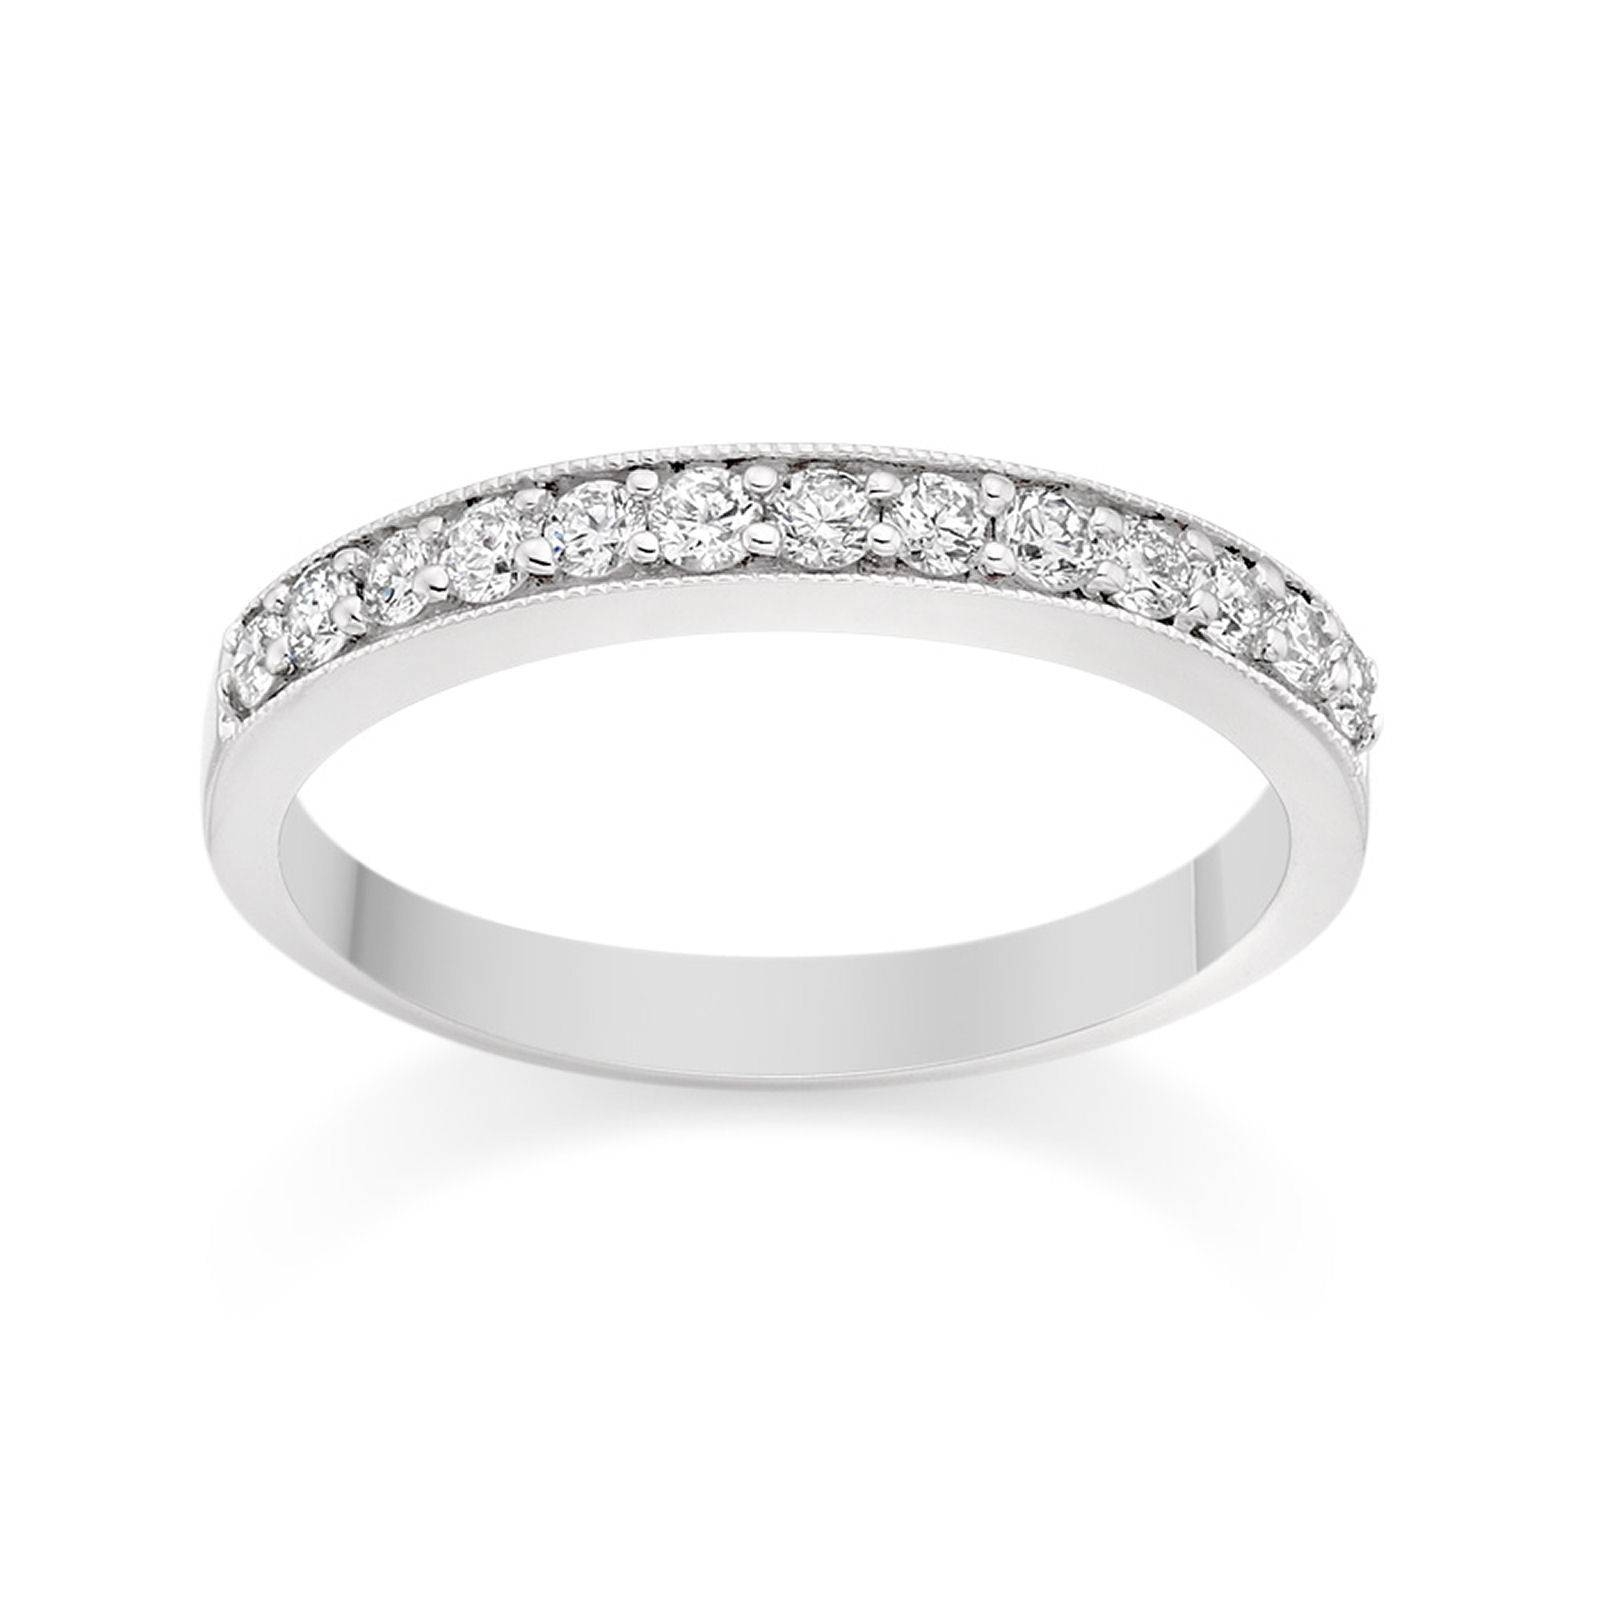 Milgrain Pave Set Diamond Wedding Ring In 18K White Gold Wedding In Best And Newest Pave Setting Wedding Bands (View 7 of 15)